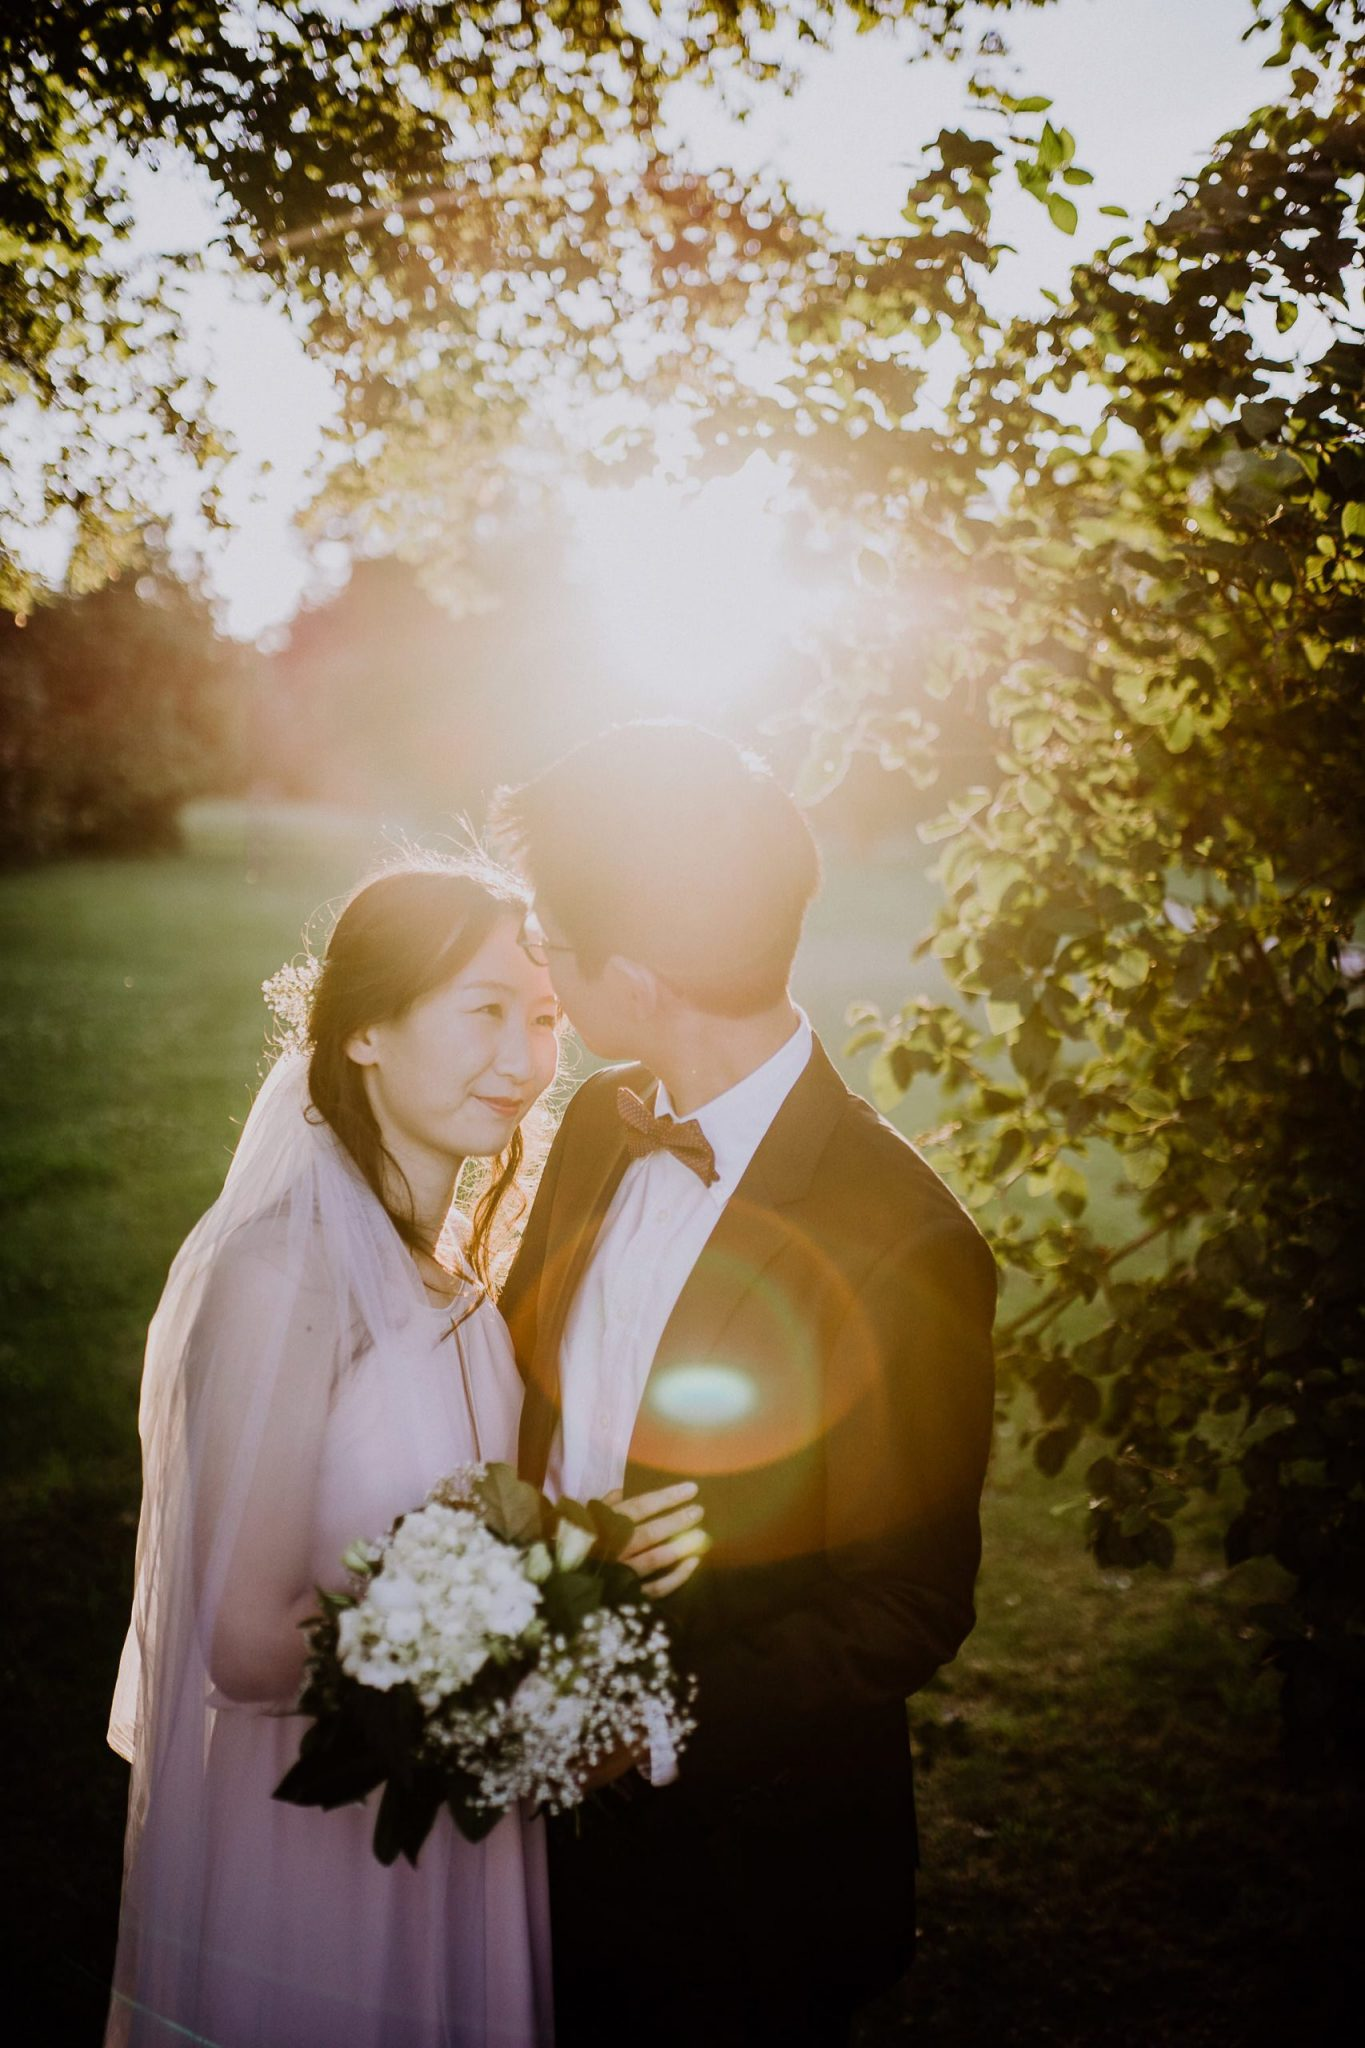 wedding photographer hamilton new zealand 1019 5 scaled